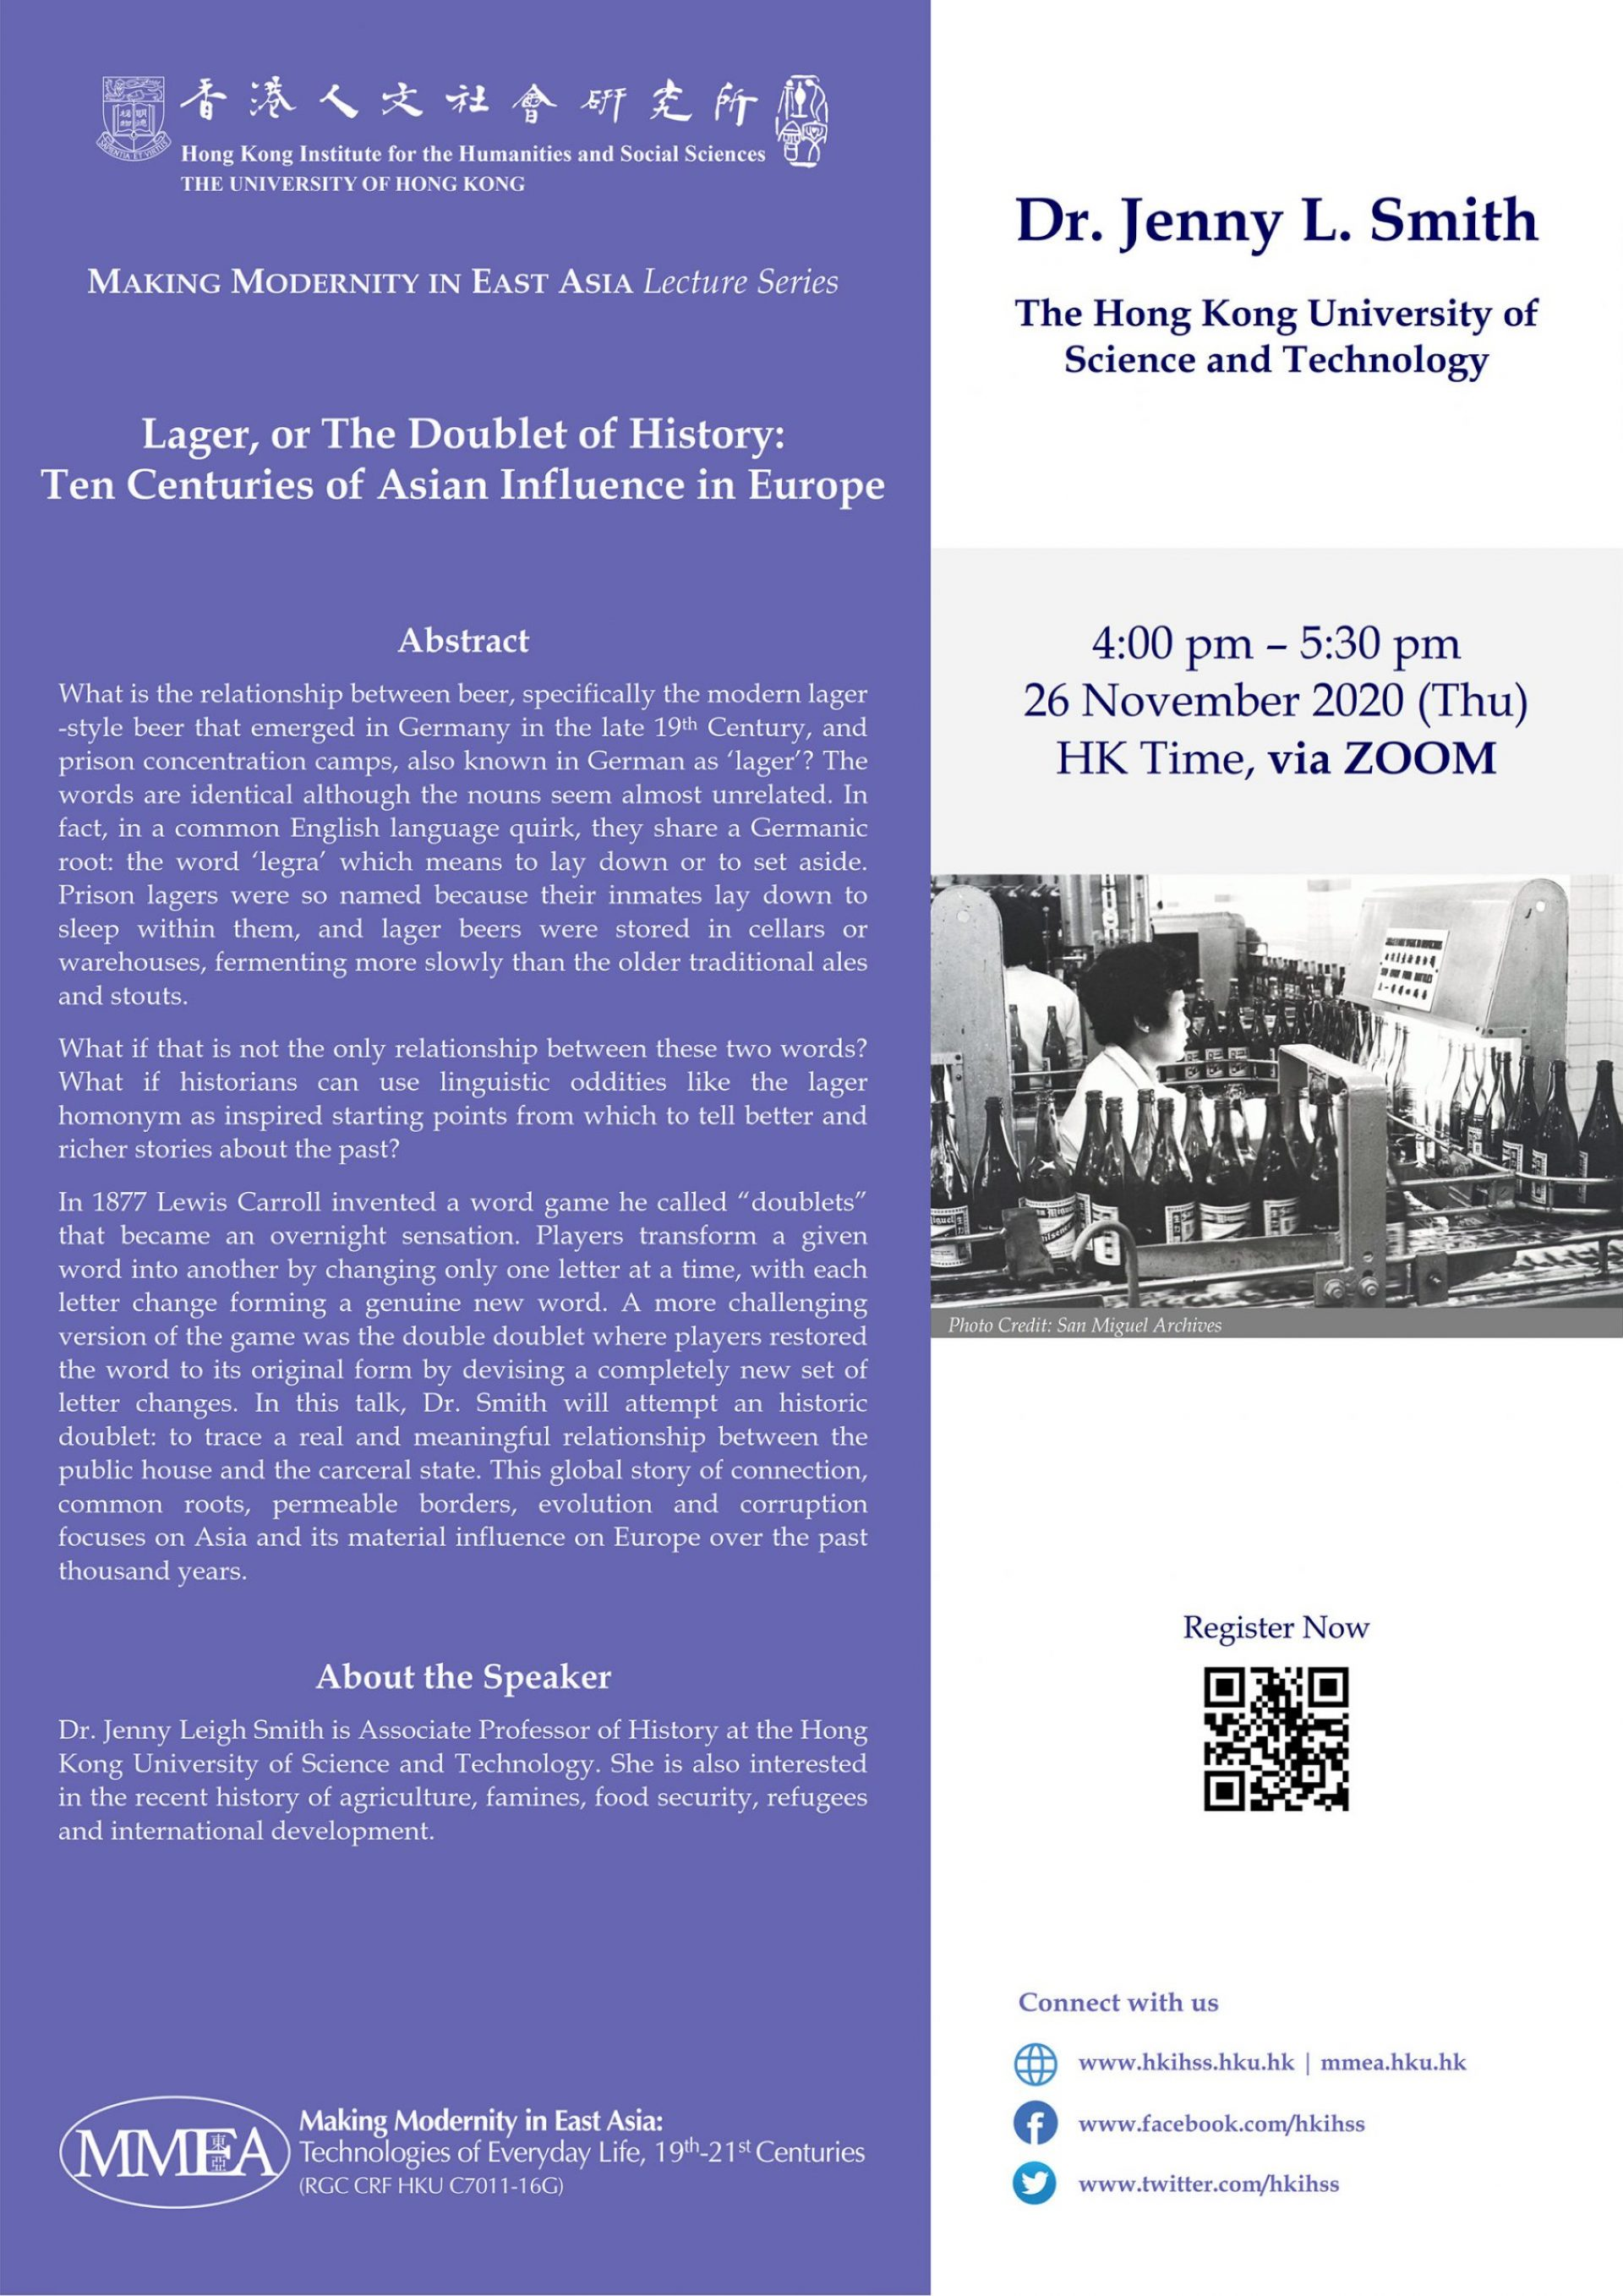 """MMEA Lecture Series """"Lager, or The Doublet of History: Ten Centuries of Asian Influence in Europe"""" by Dr. Jenny L. Smith (November 26, 2020)"""